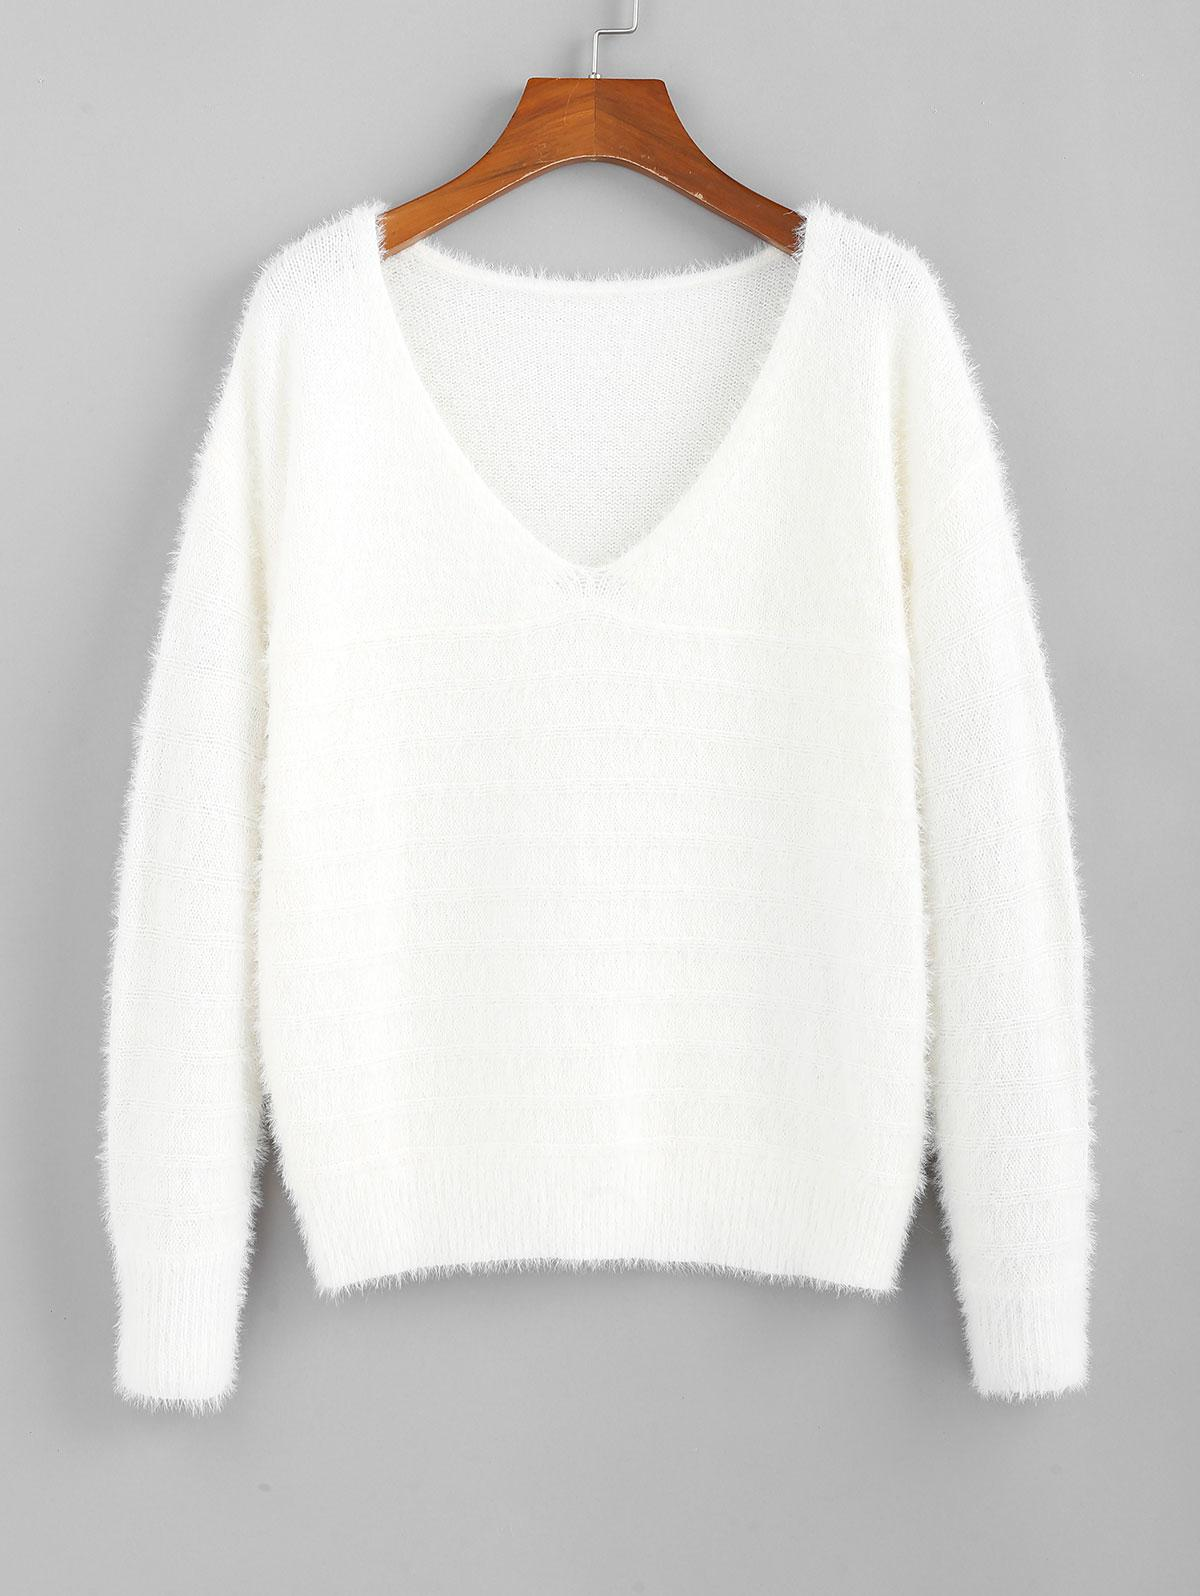 ZAFUL Fuzzy Knitted V Neck Drop Shoulder Sweater фото